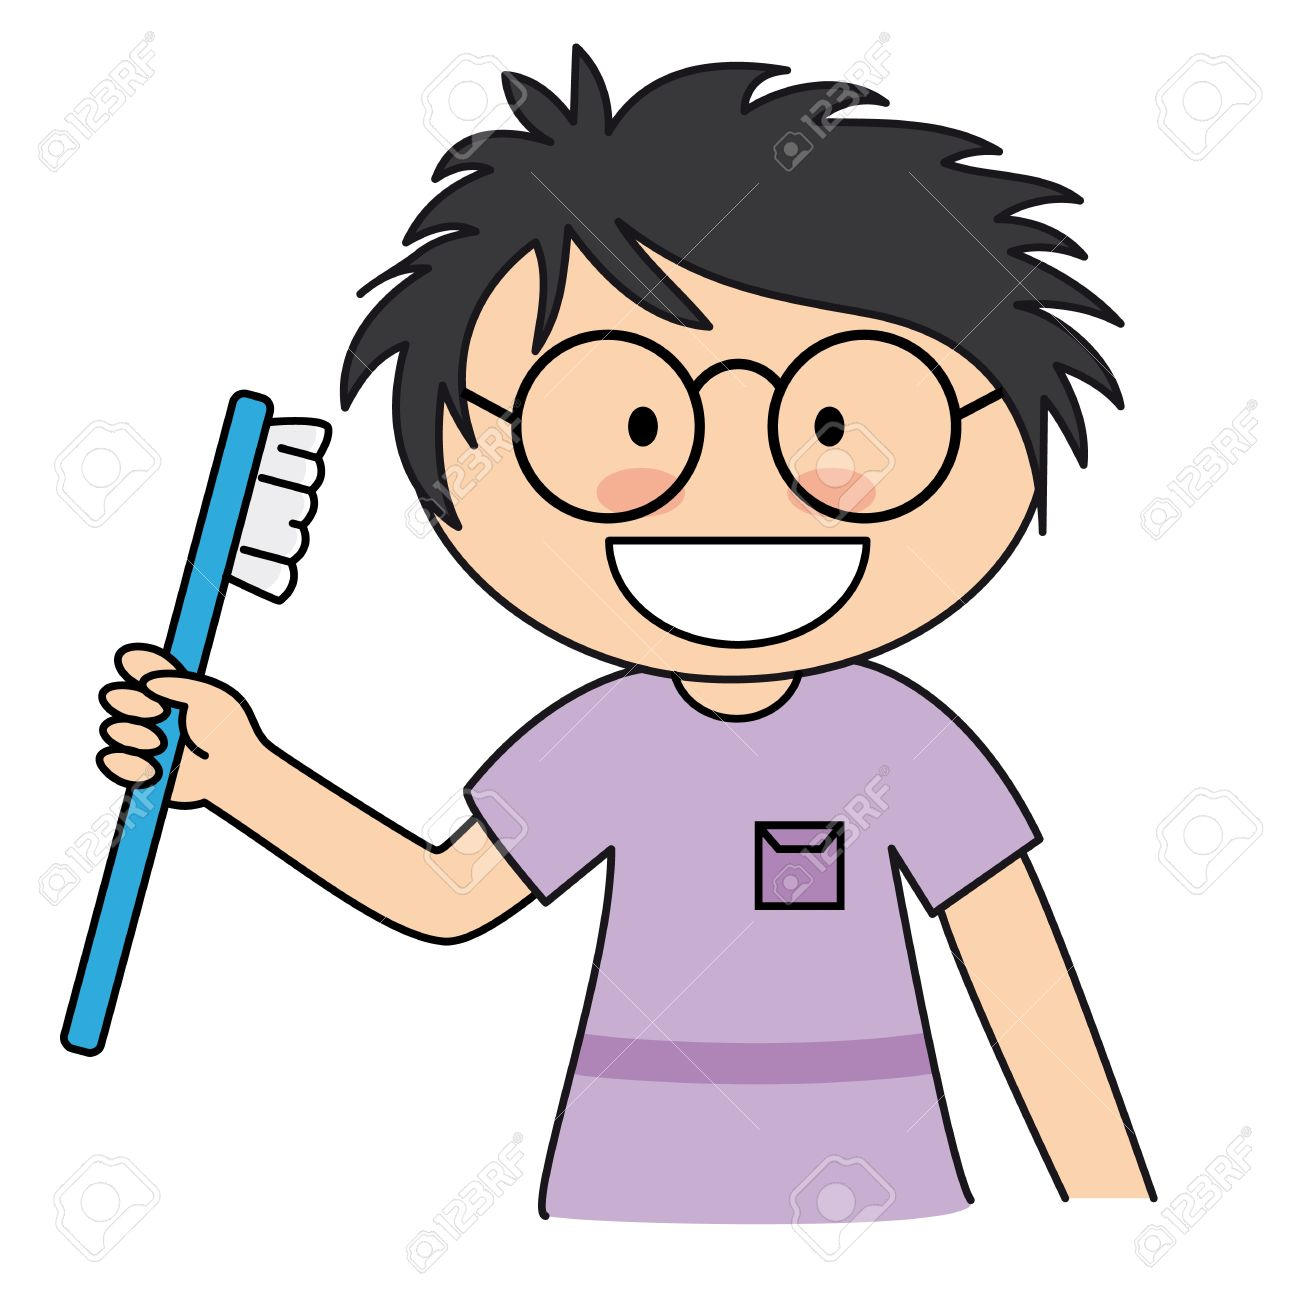 1300x1300 Boy Brushing Her Teeth Royalty Free Cliparts, Vectors, And Stock